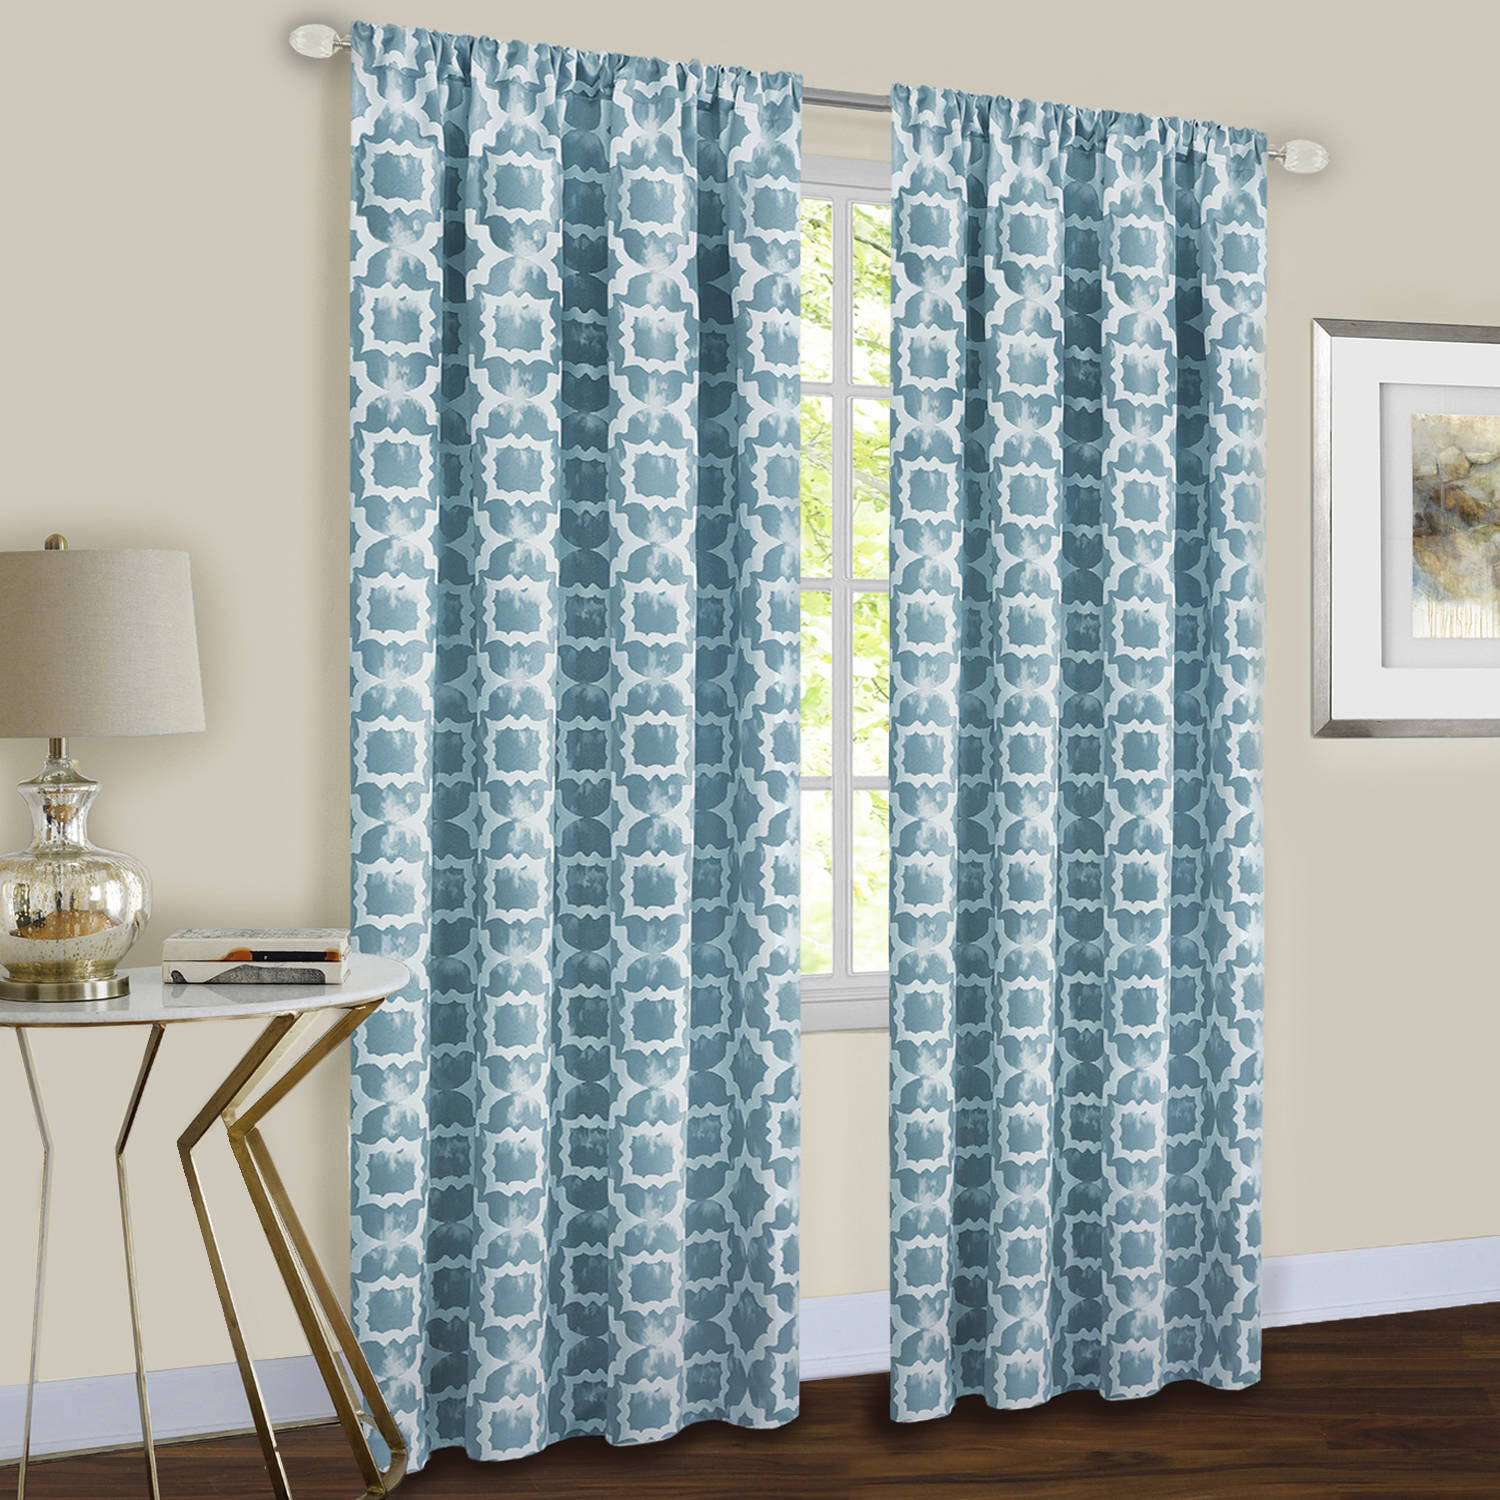 crate and barrel curtains moroccan curtains window drapes